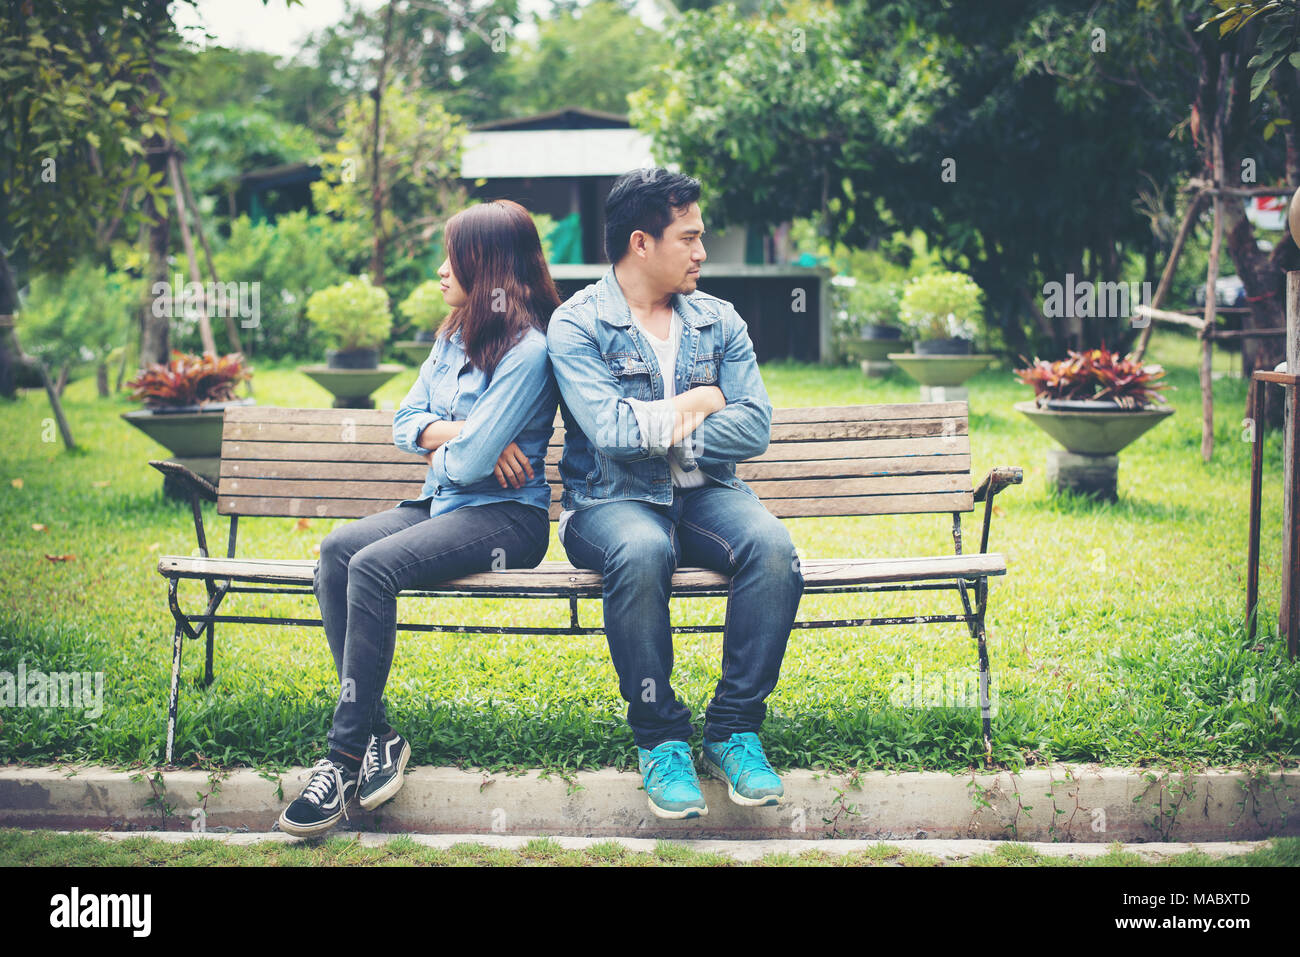 Displeased young couple sitting on bench in park, Couple lifestyle concept. - Stock Image